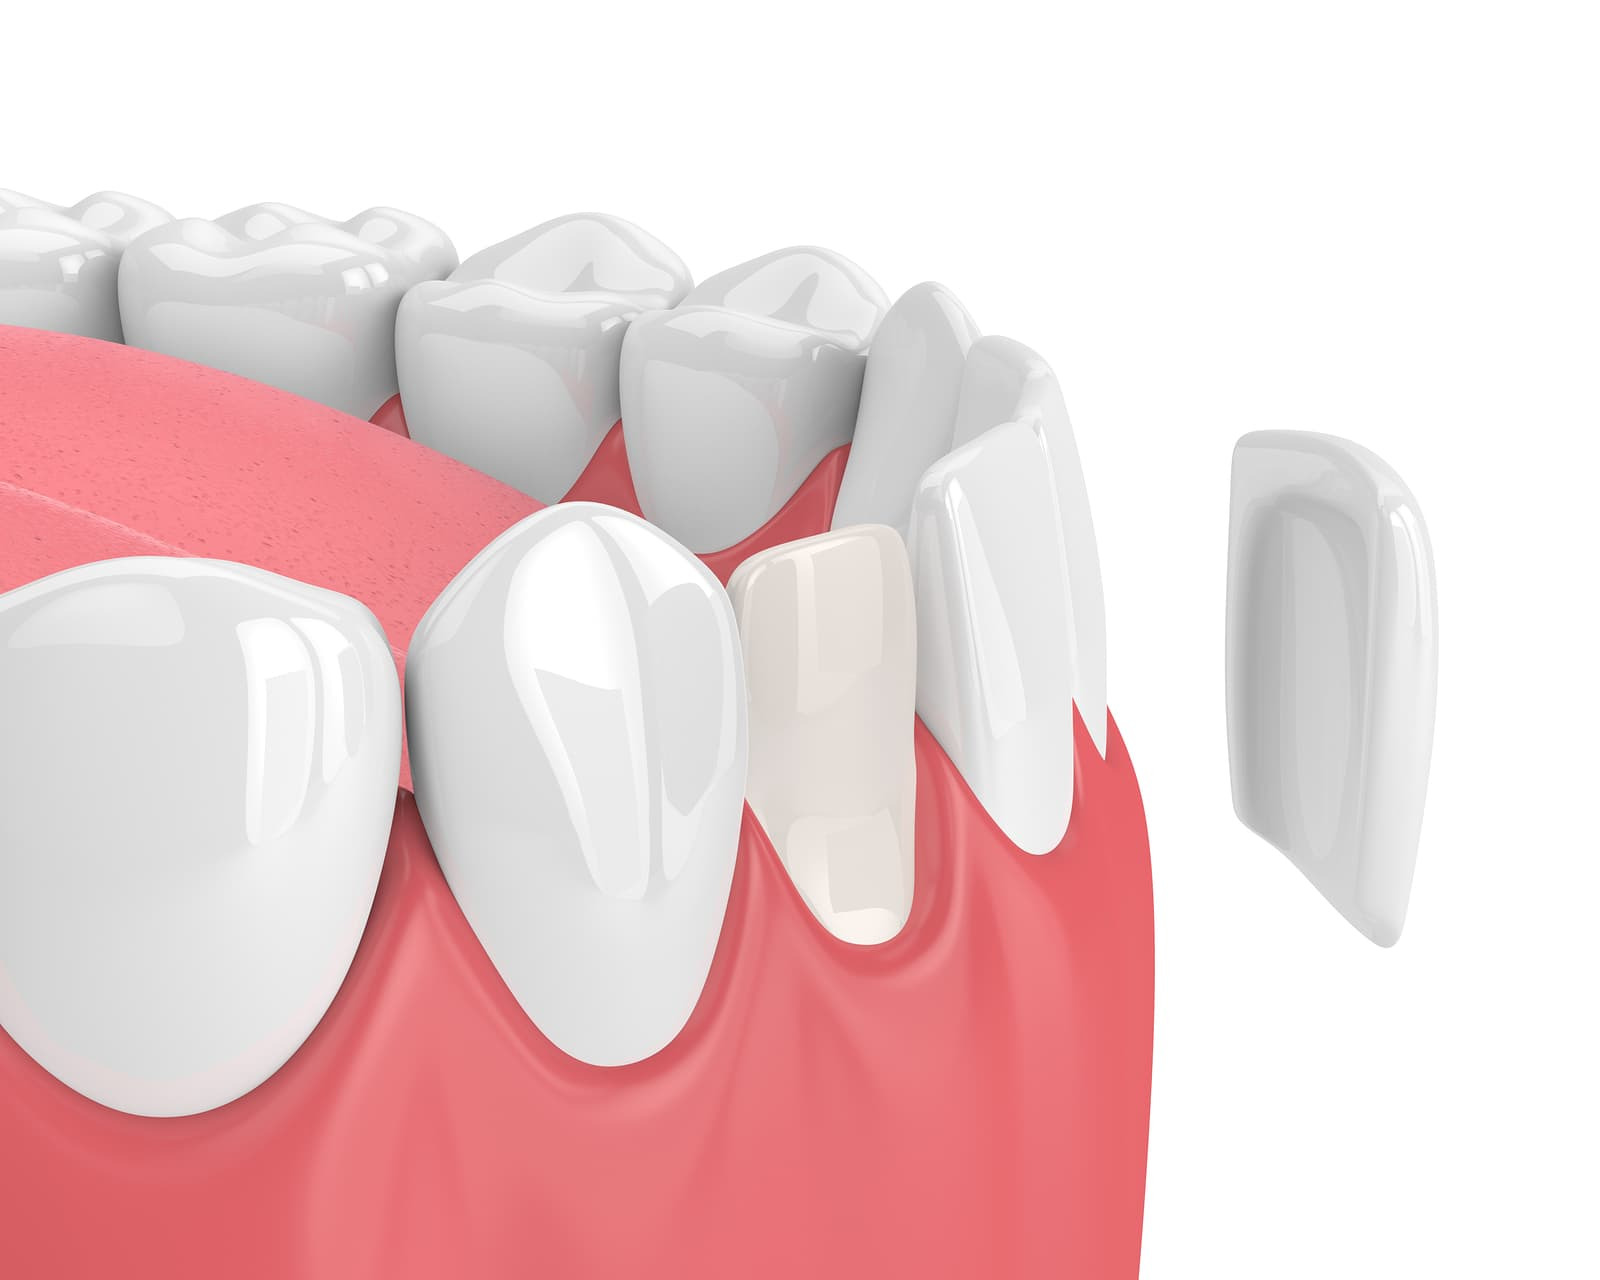 bigstock-D-Render-Of-Teeth-With-Veneer-240002497